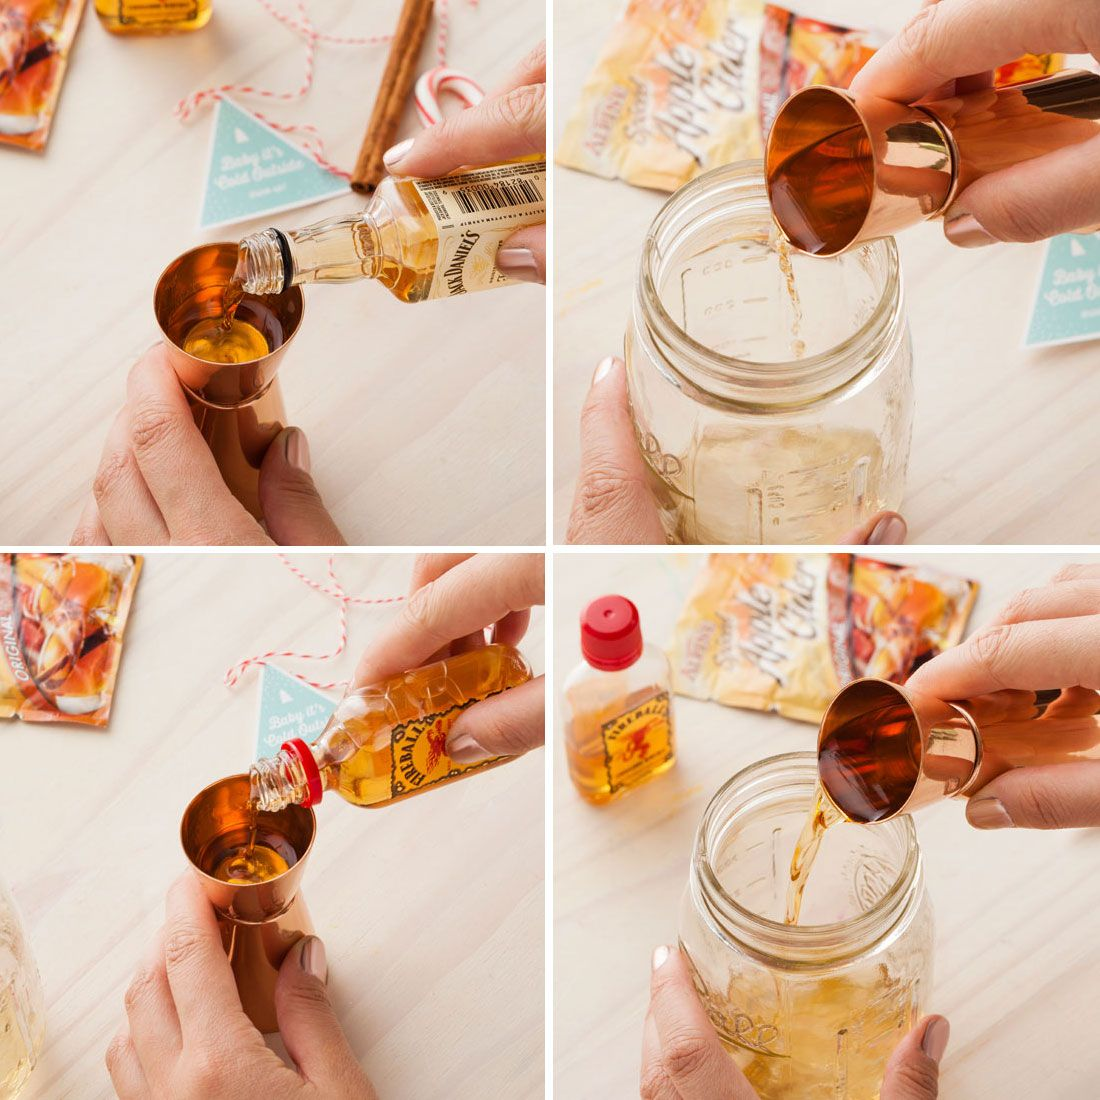 This Mason Jar Cocktail Is The Best Stocking Stuffer Idea For Adults Mason Jar Cocktails Mason Jar Cocktail Gifts Best Stocking Stuffers